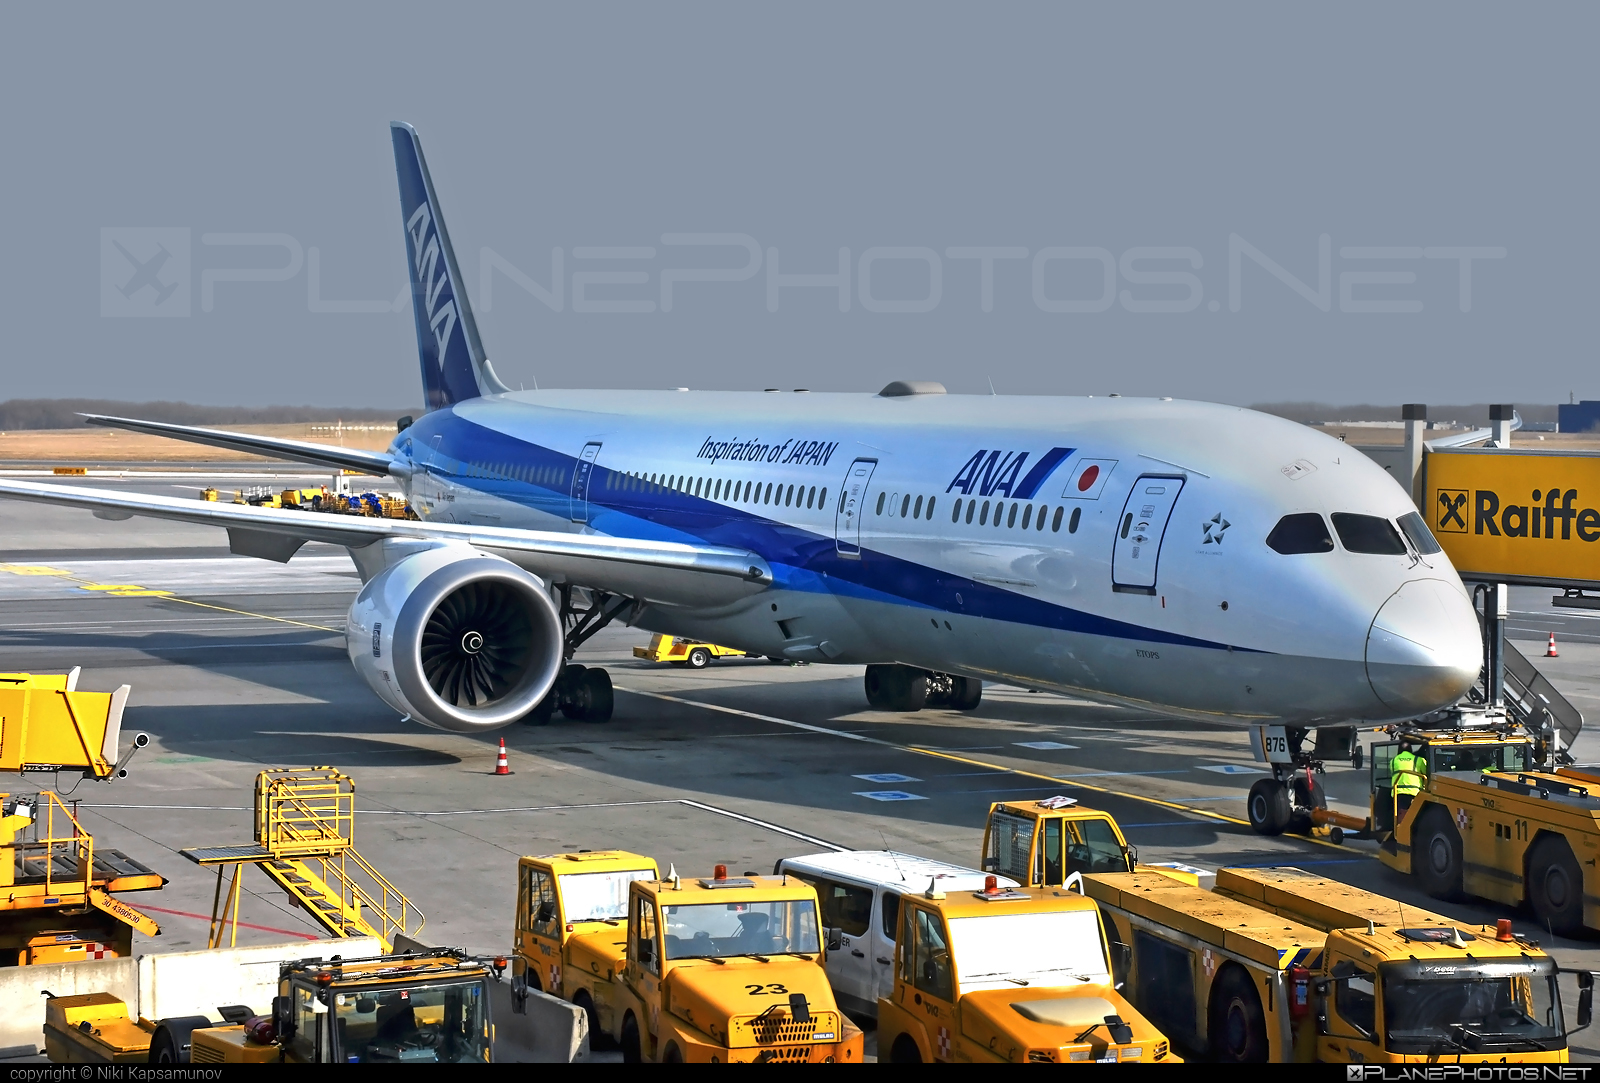 Boeing 787-9 Dreamliner - JA876A operated by All Nippon Airways (ANA) #b787 #boeing #boeing787 #dreamliner